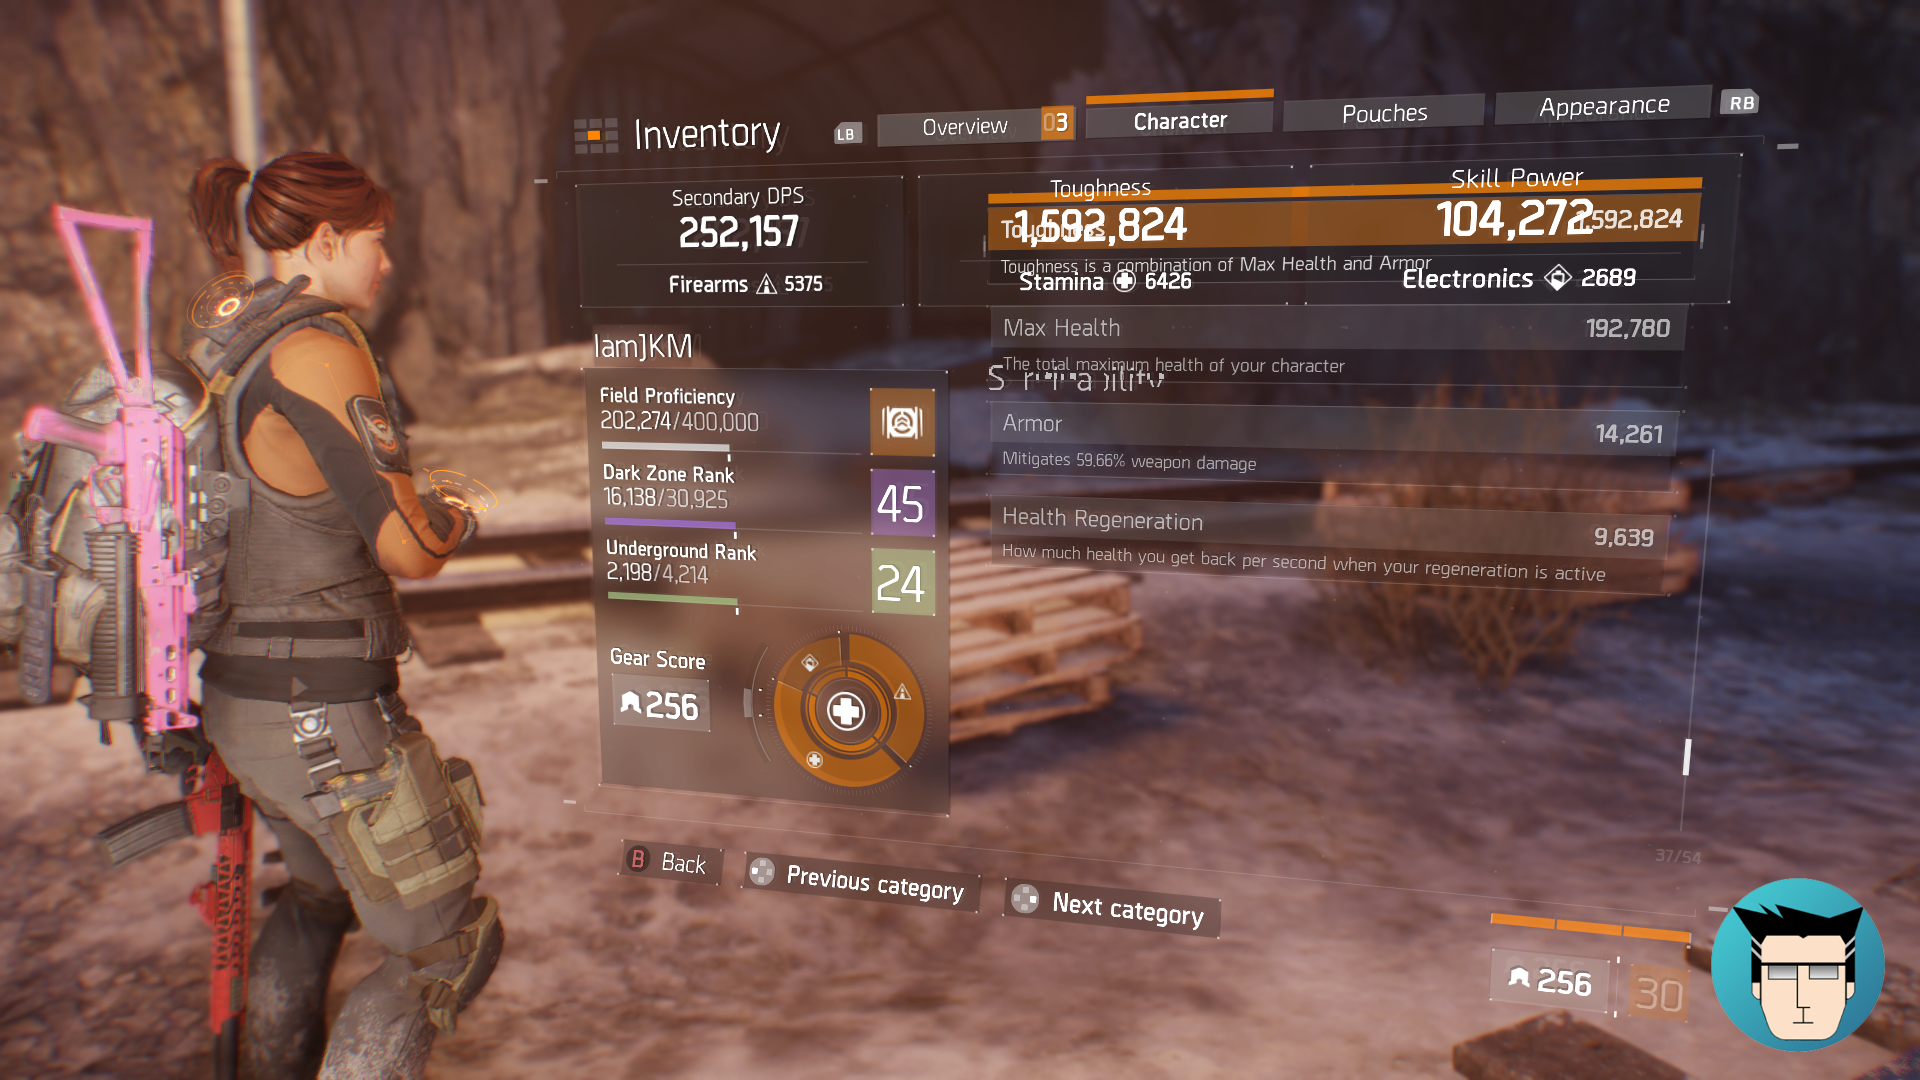 Overview | 1.59m Toughness, Armor Mitigation at 59.66%